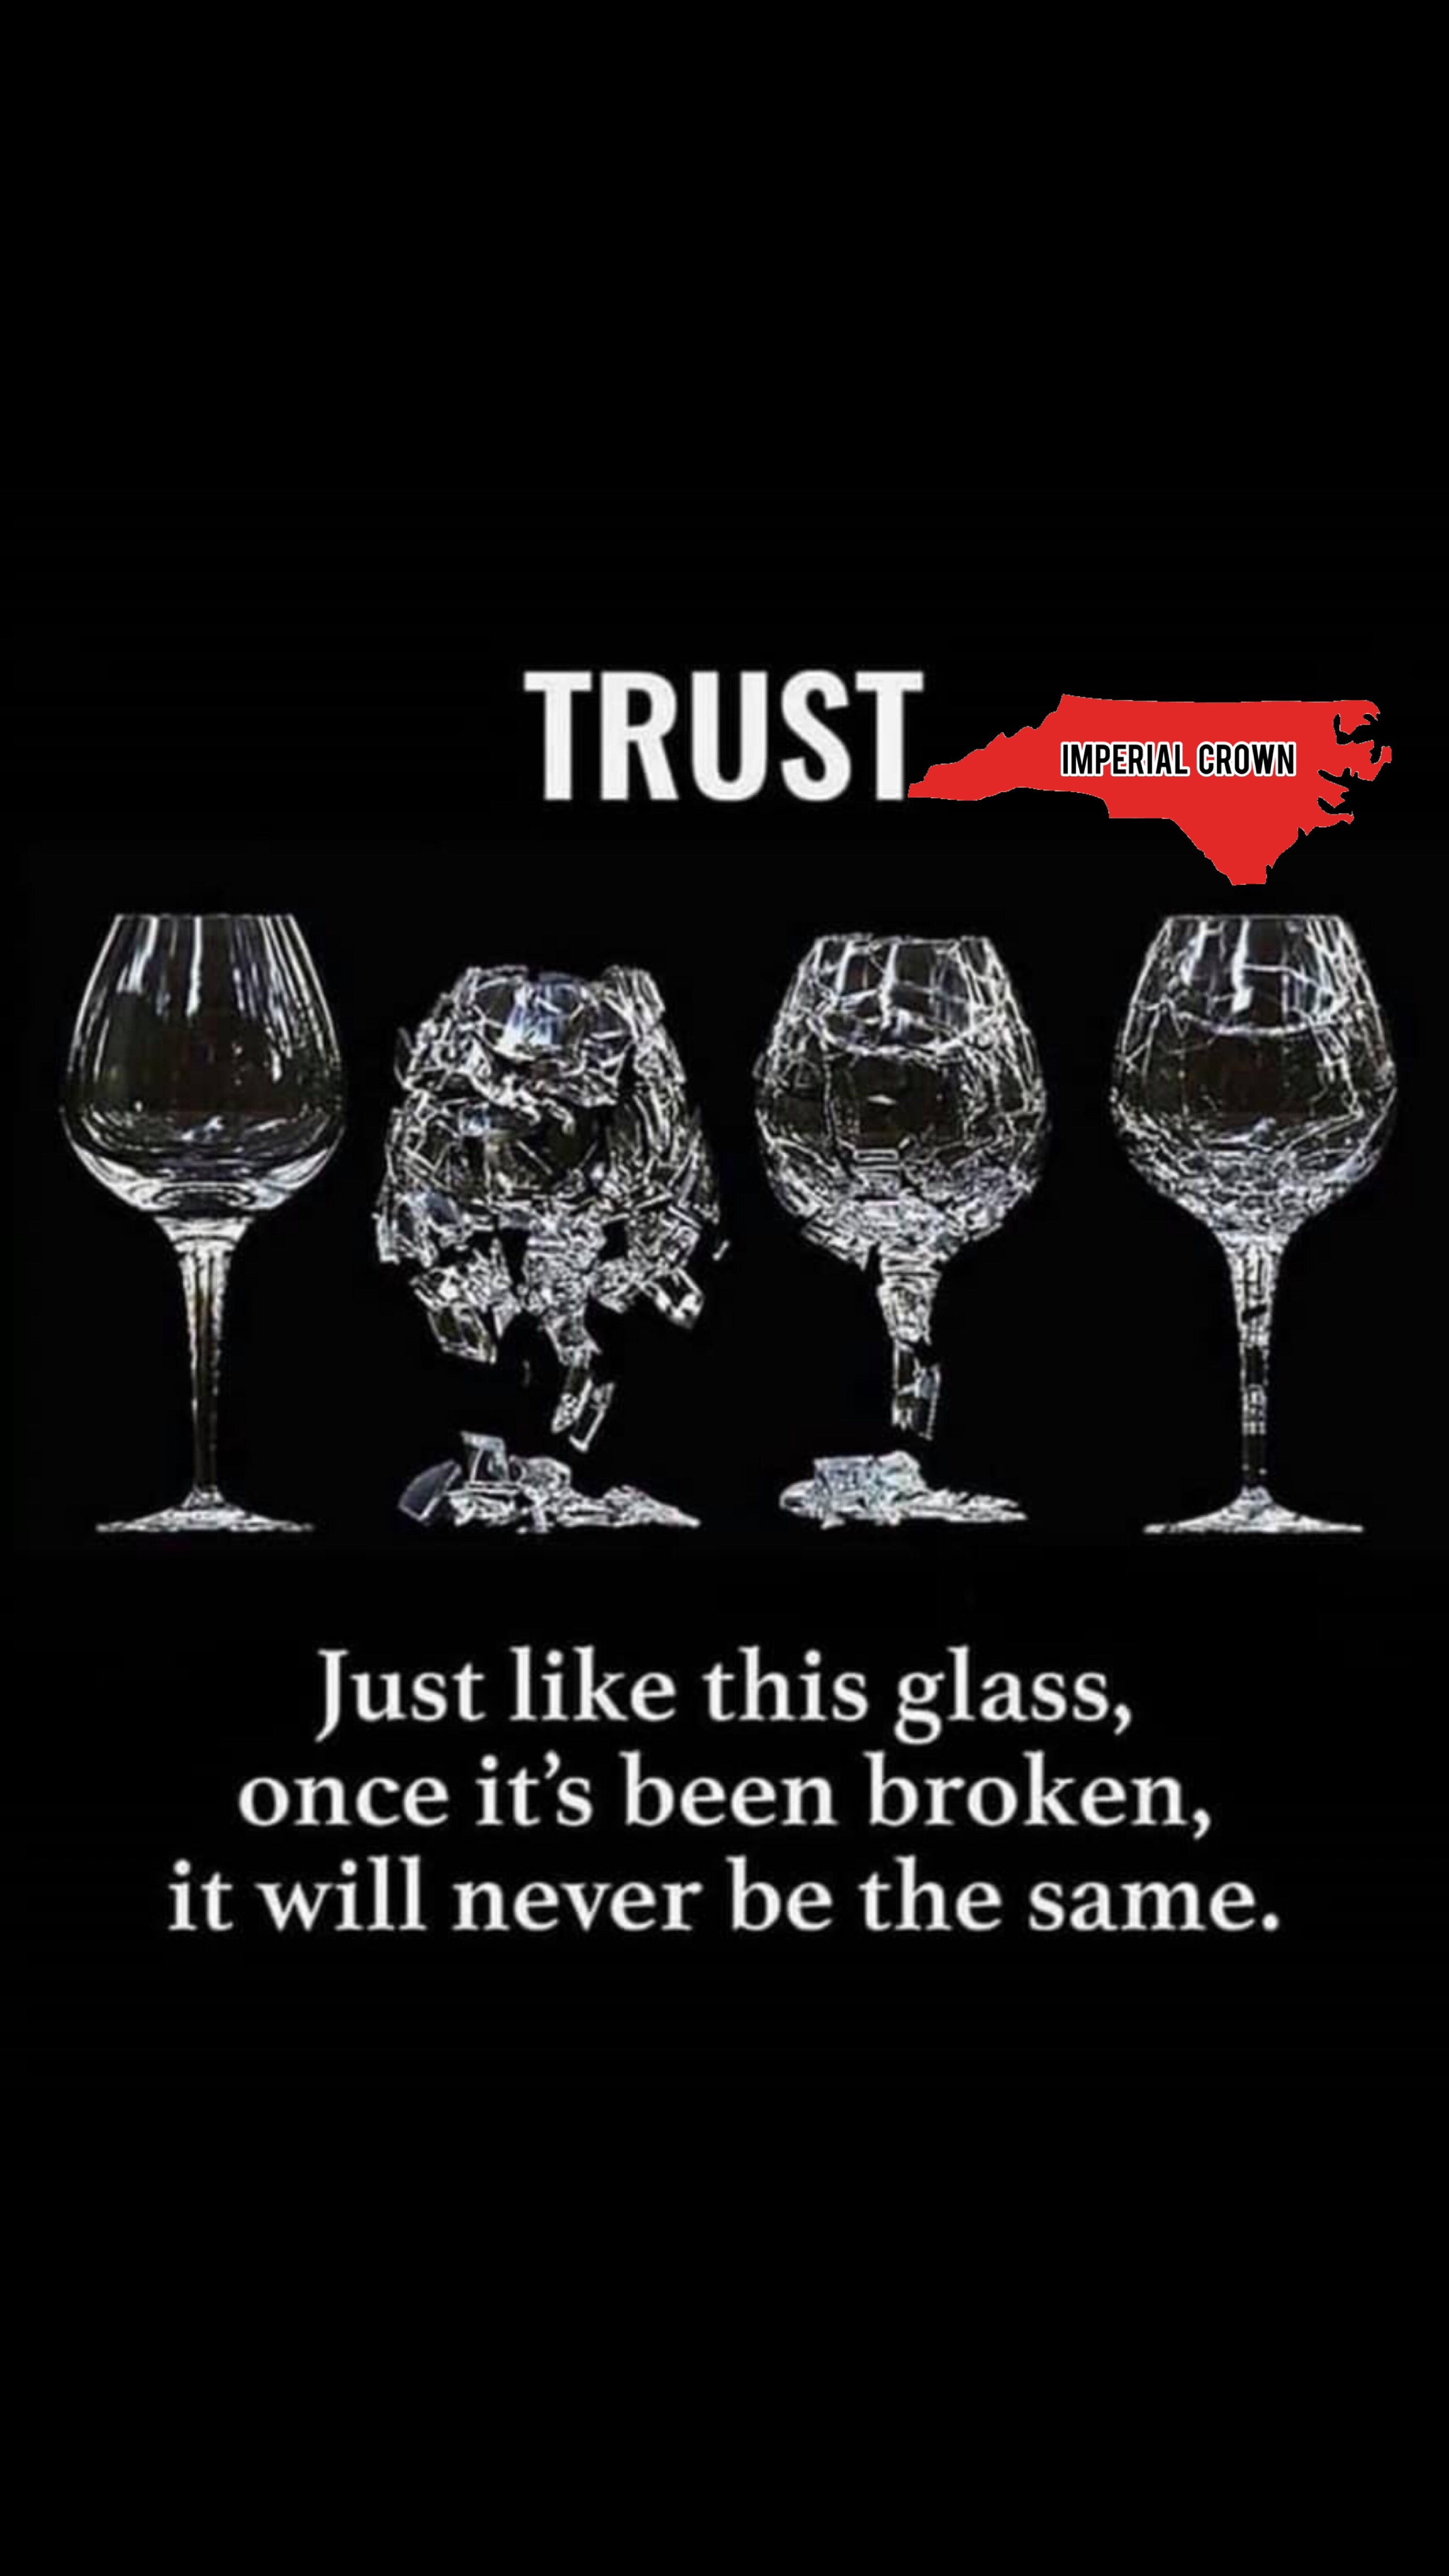 Trust! Just like this glass, once It's been broken…